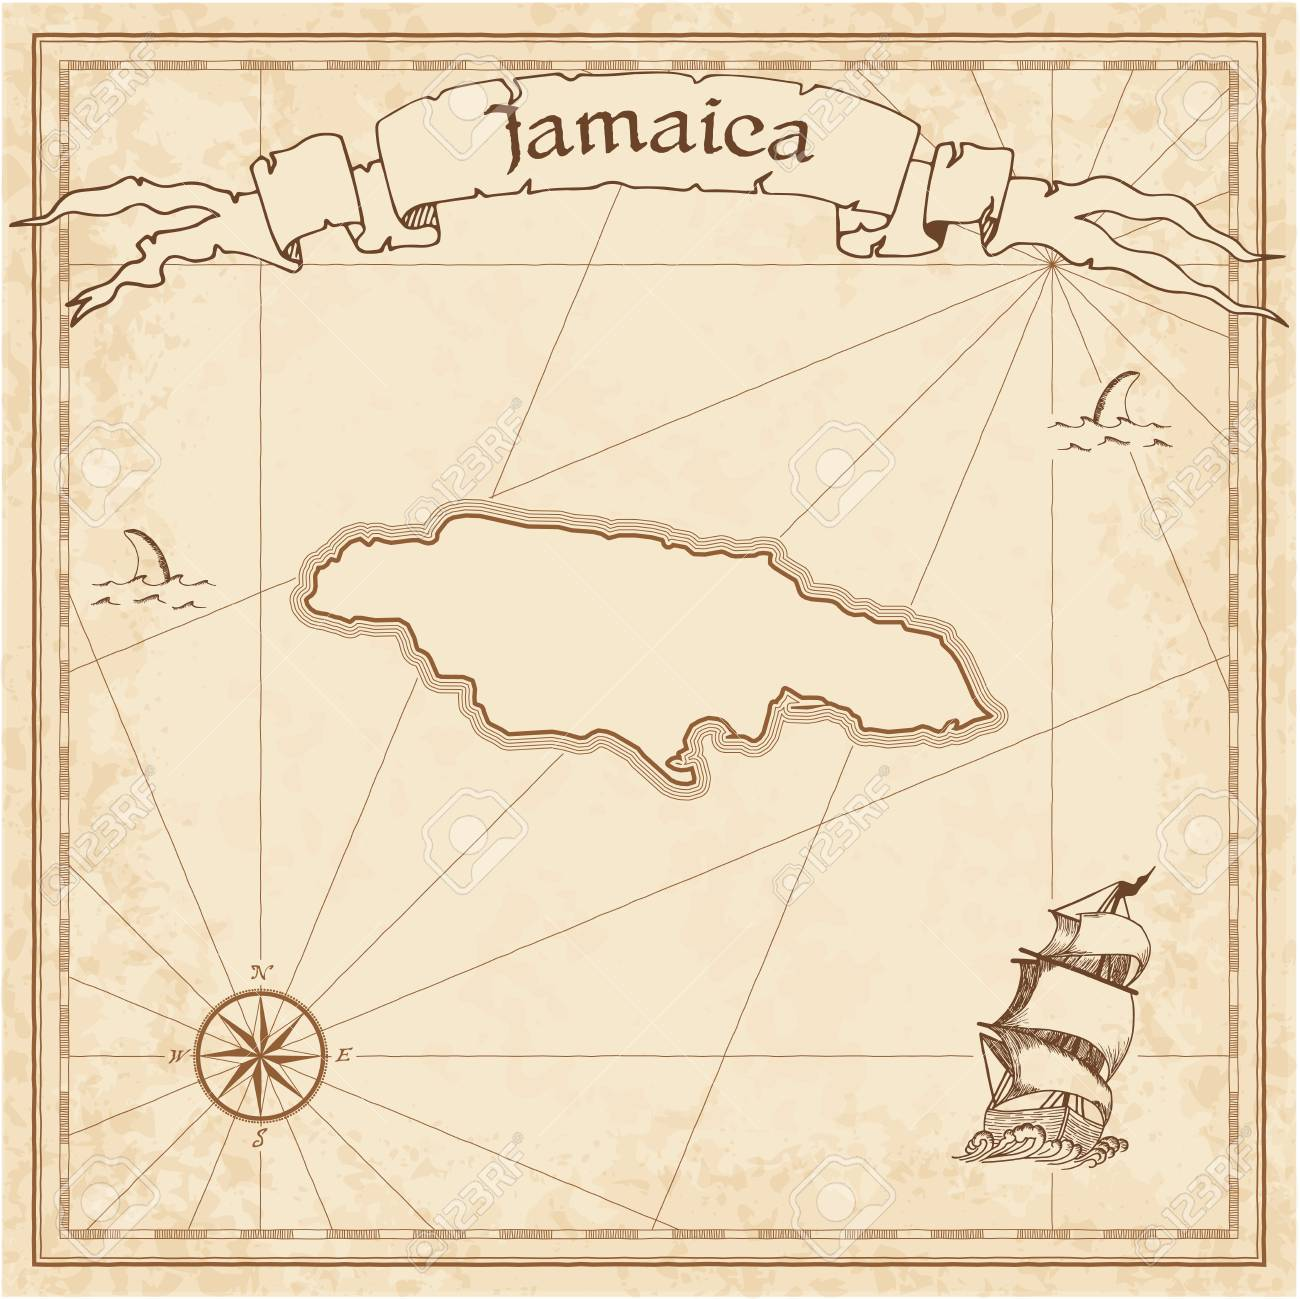 Jamaica Old Treasure Map Sepia Engraved Template Of Pirate Stylized On